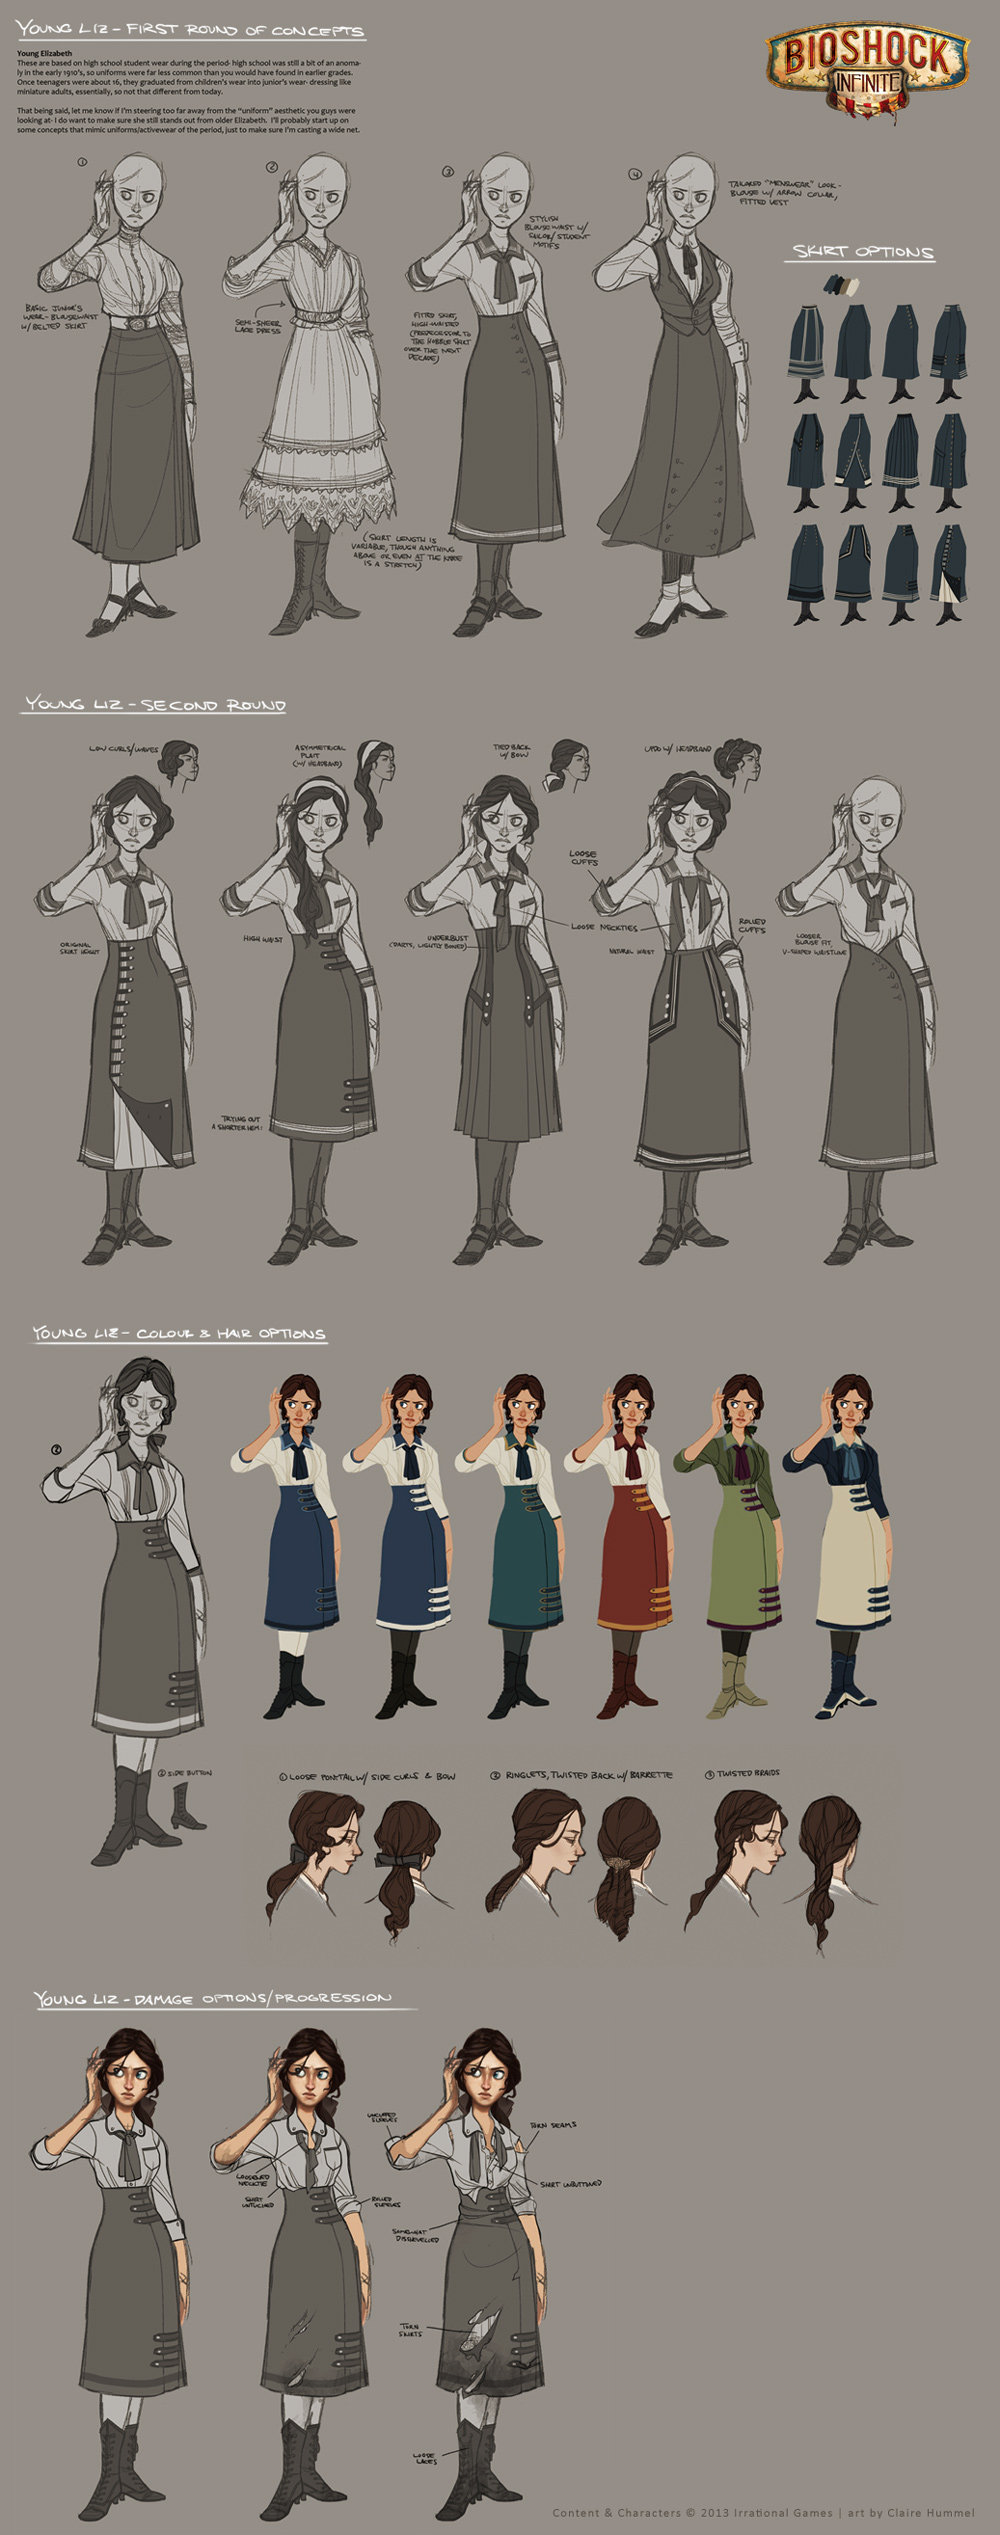 Bioshock Infinite - Young Liz costume development by shoomlah